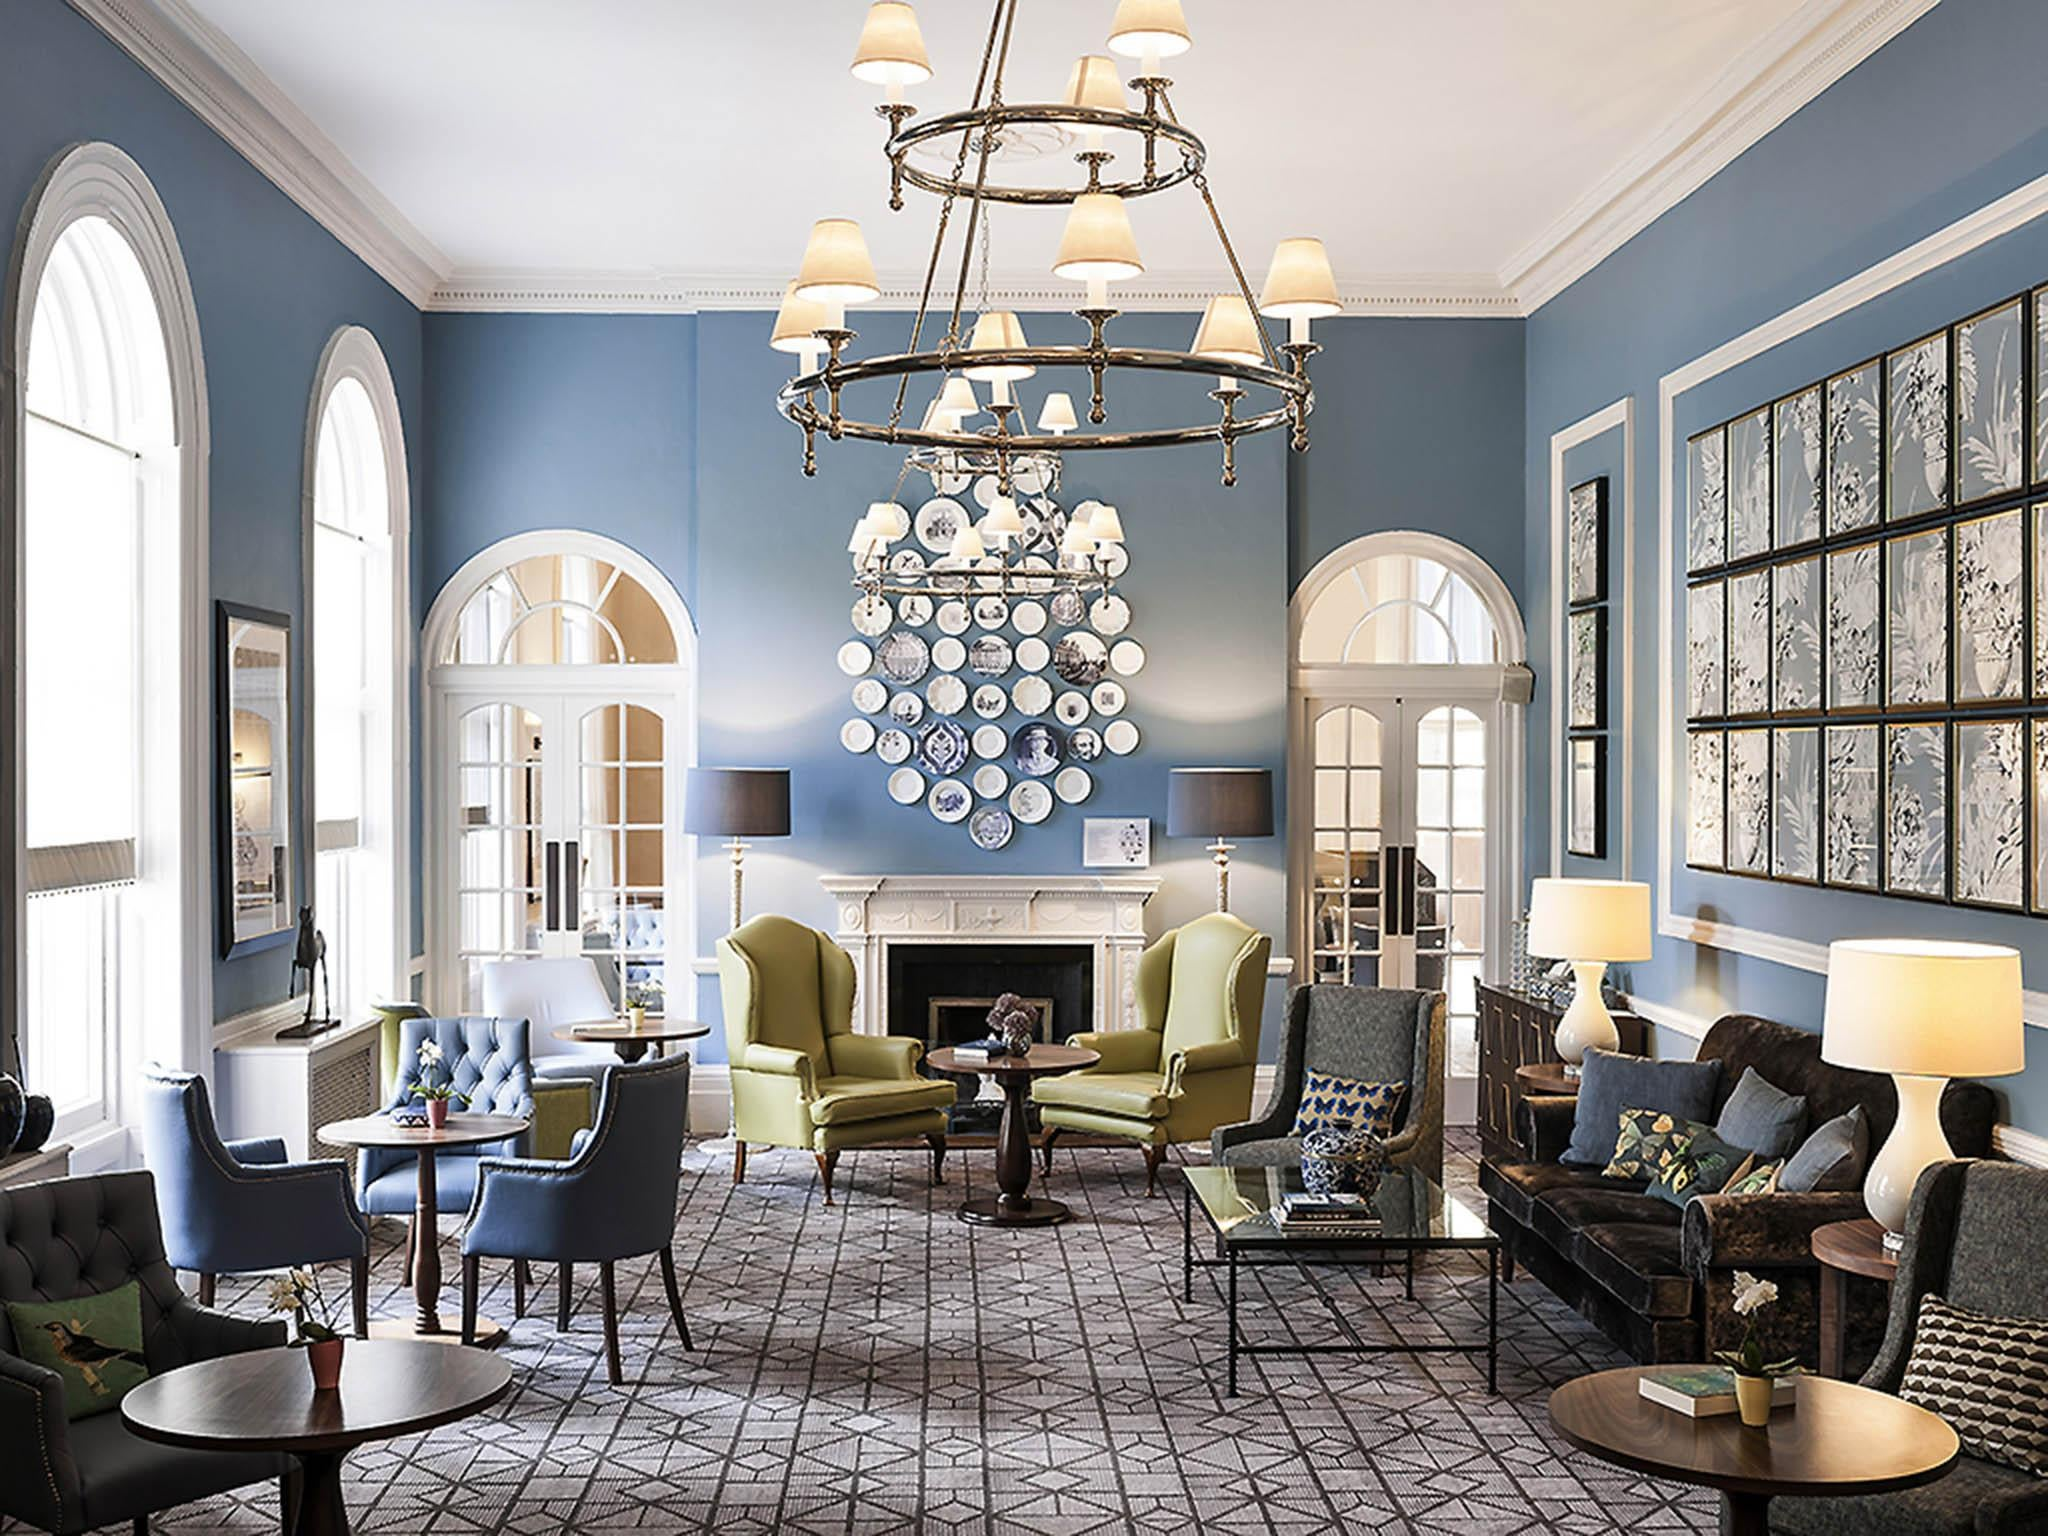 Design Destination Cheltenhams Stylish Places To Eat Drink And Stay